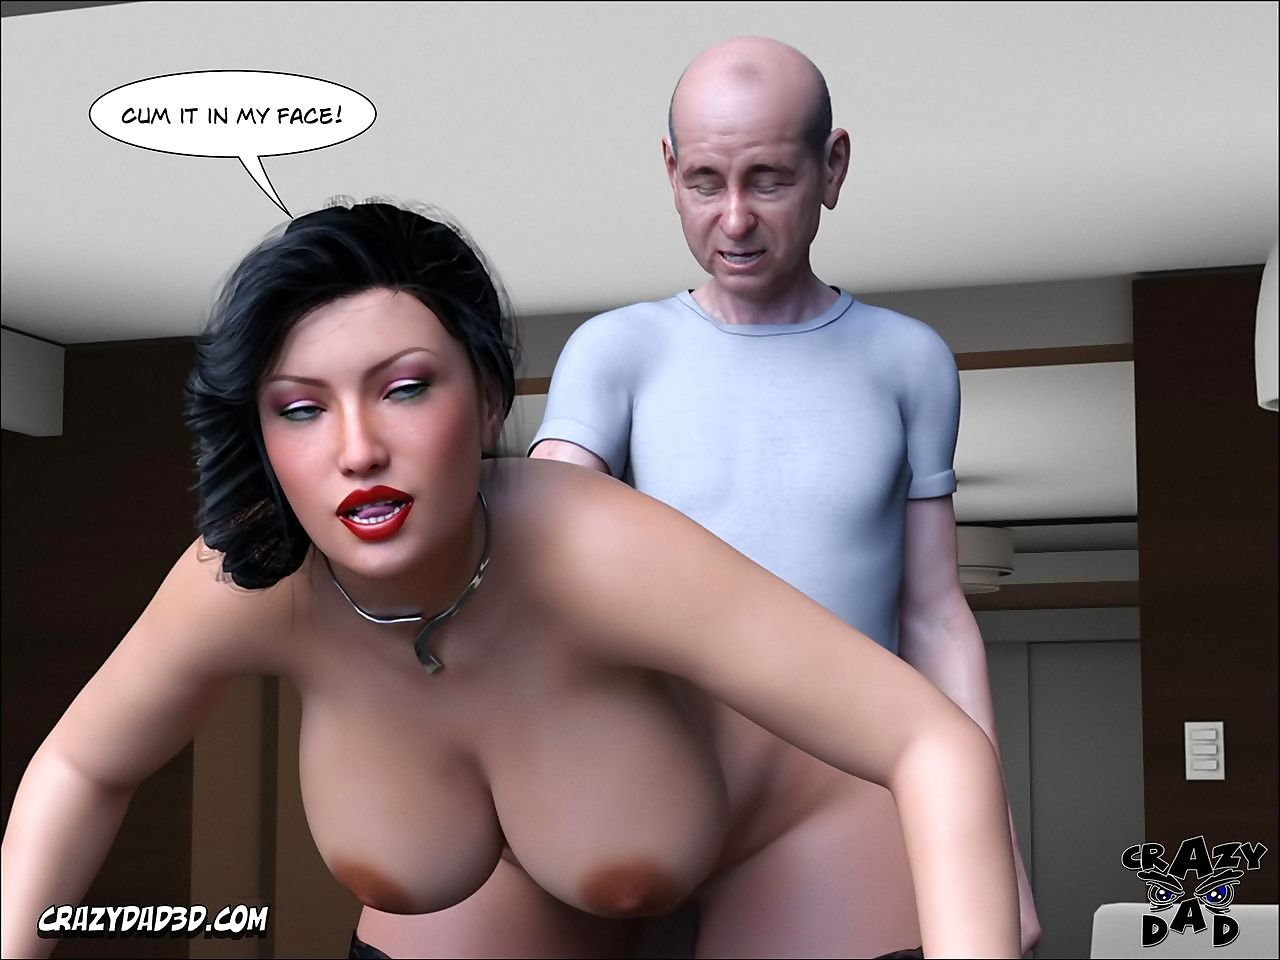 Crazy Dad - The Shepherd's Wife 5 - part 2